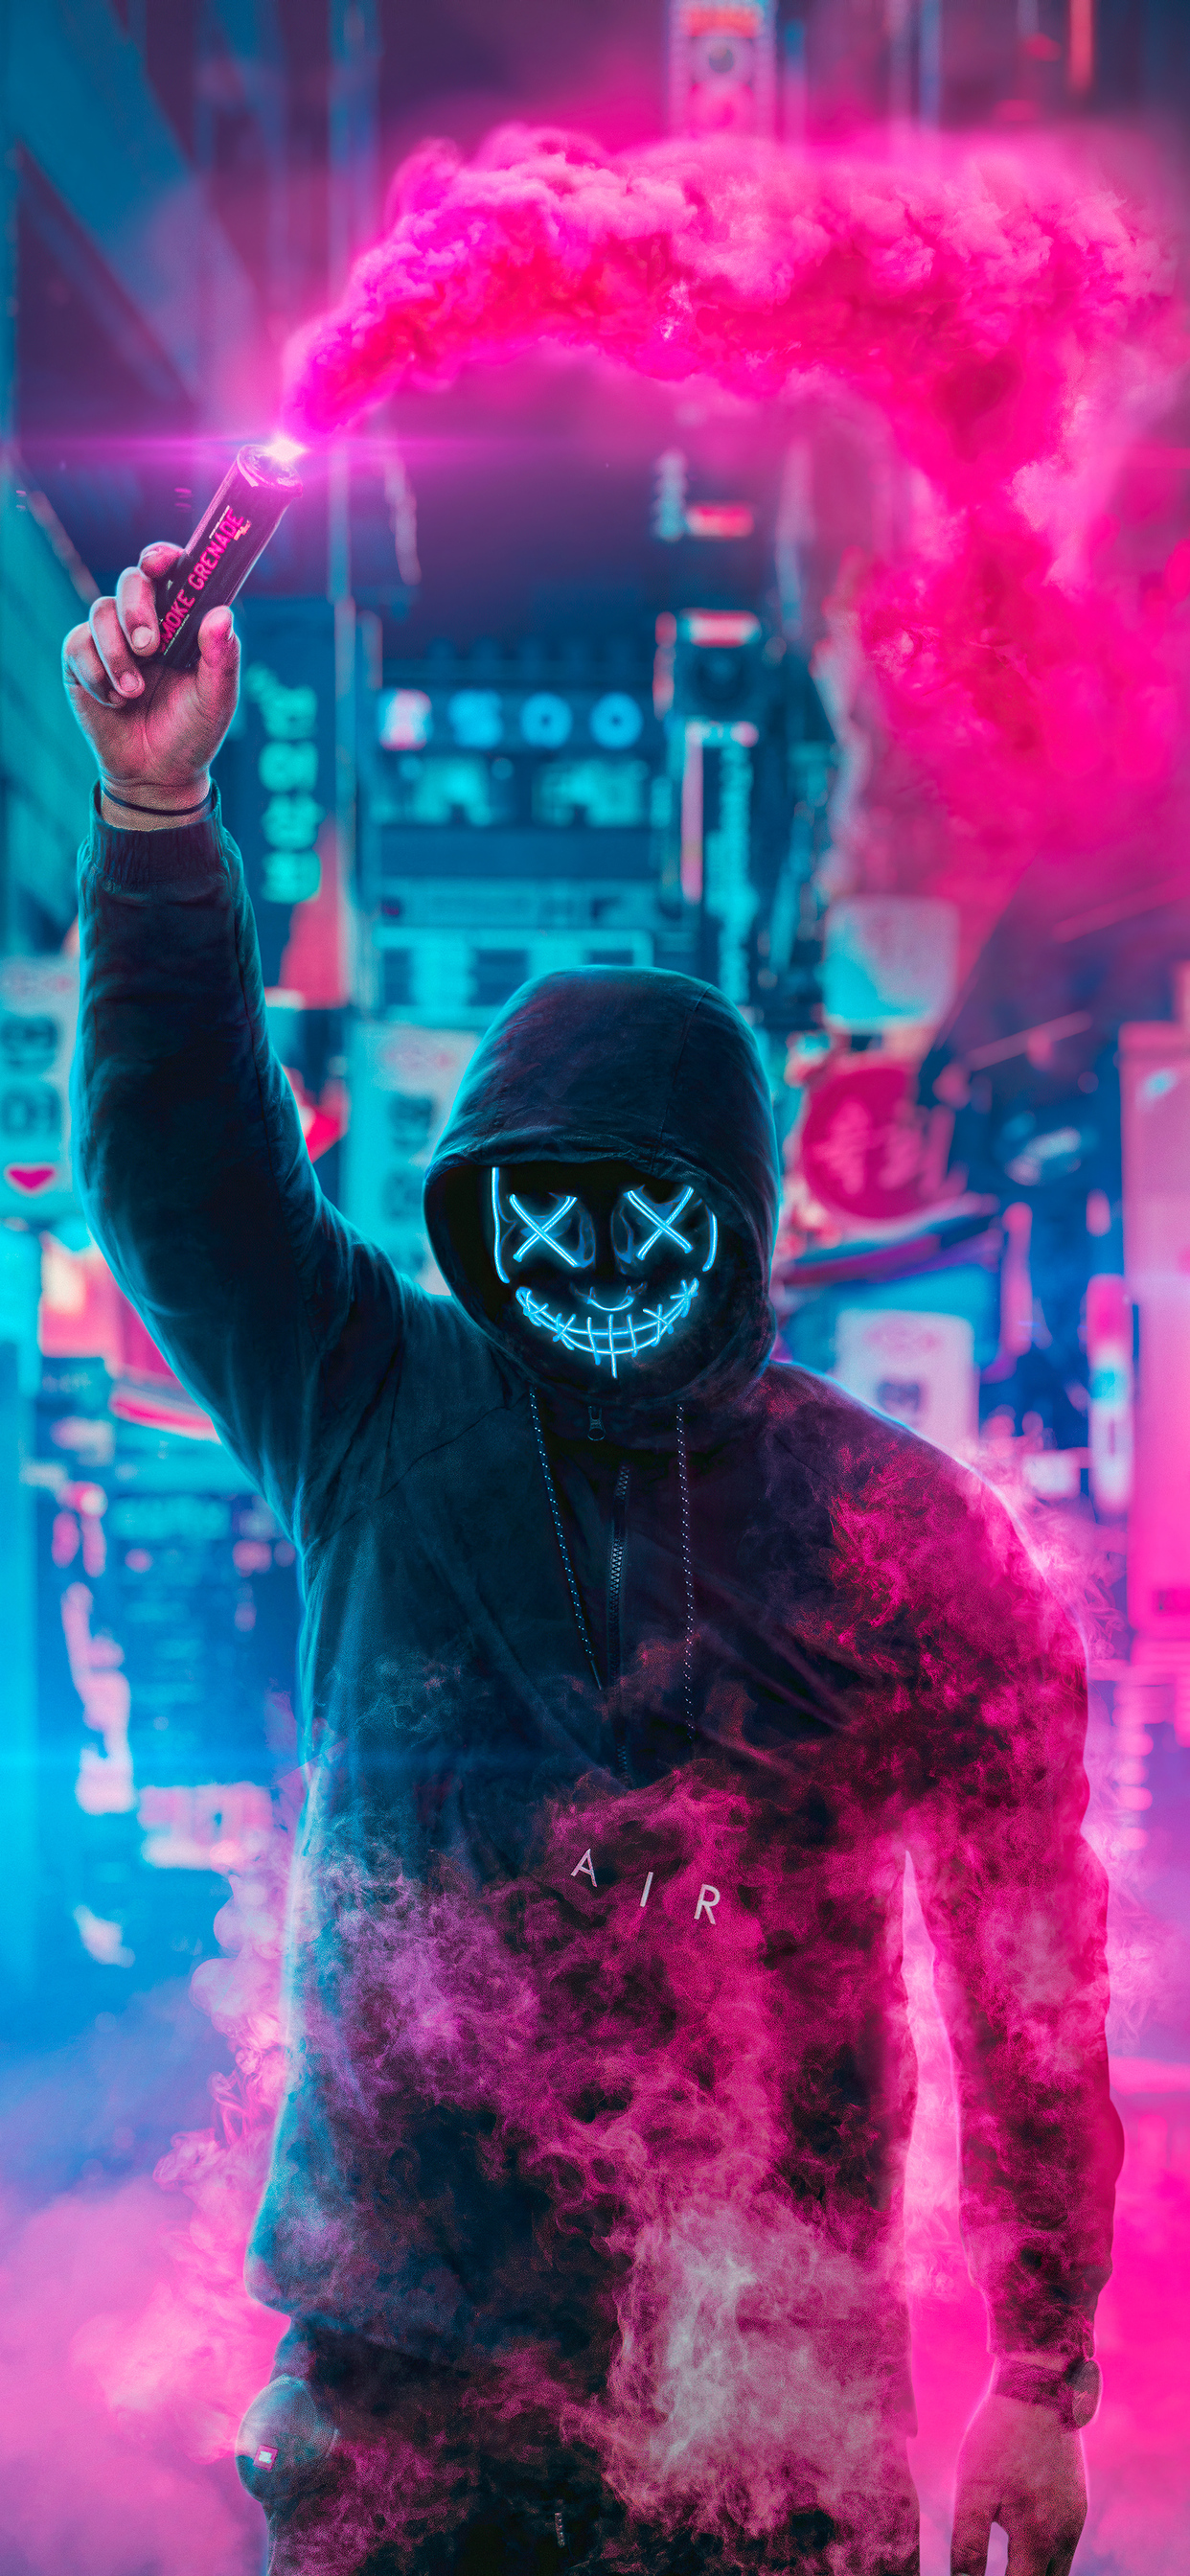 mask-guy-neon-man-with-smoke-bomb-4k-hi.jpg